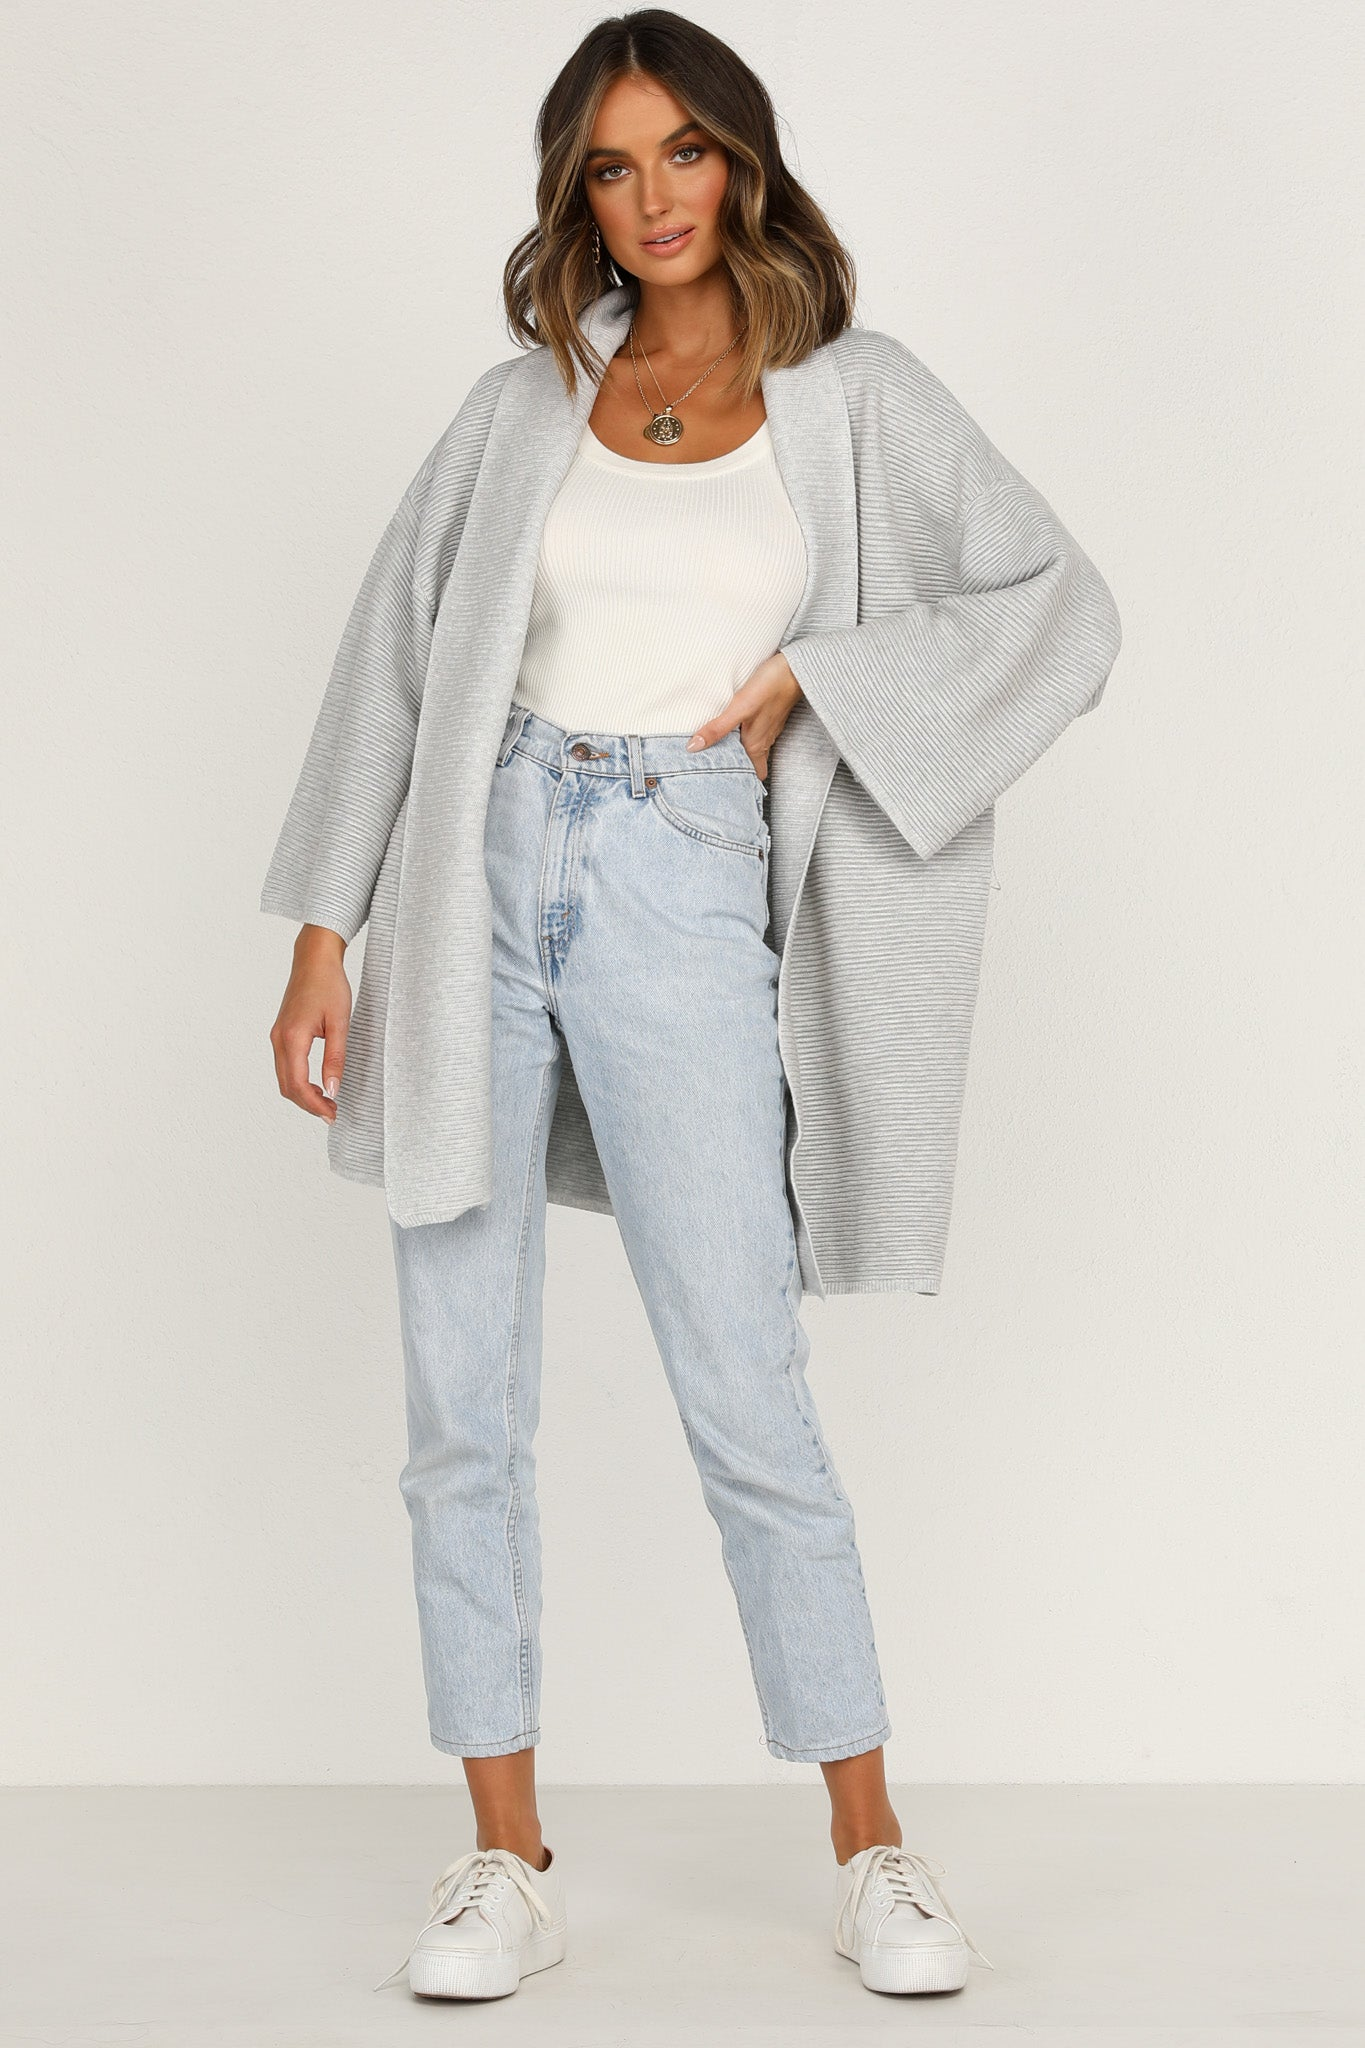 Make A Move Cardigan (Grey)